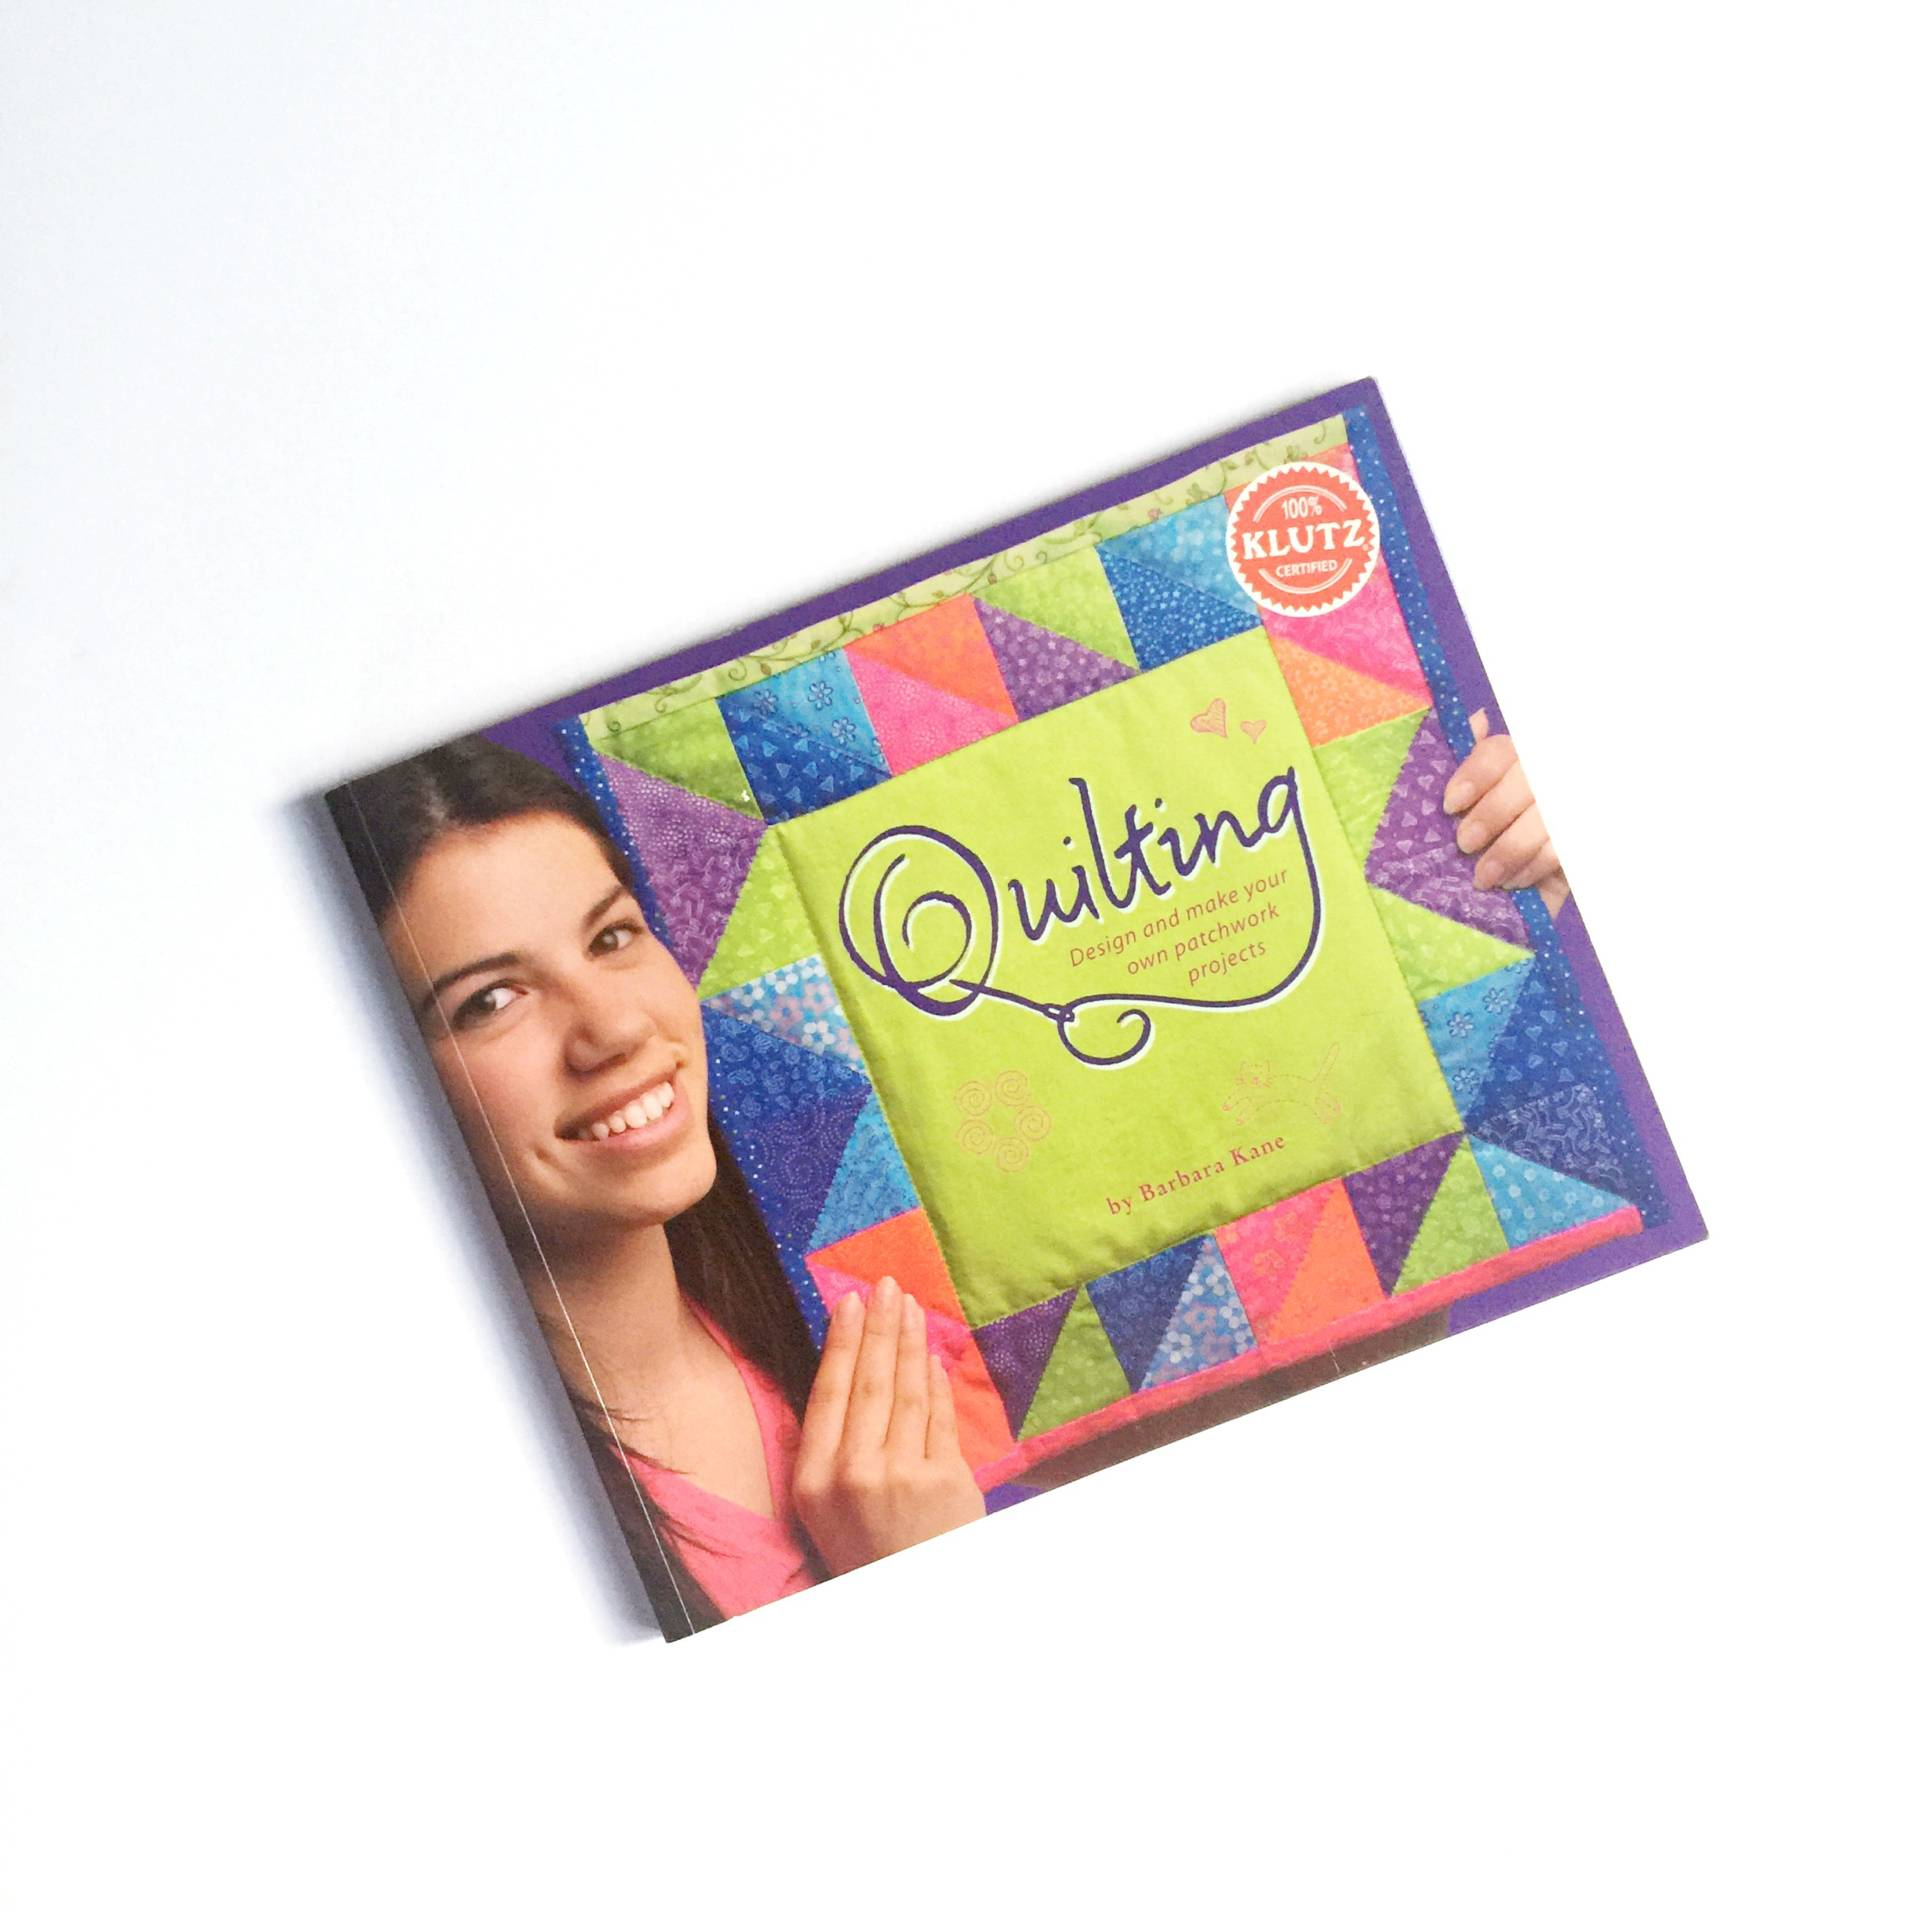 Flashback Friday: Klutz Quilting book!